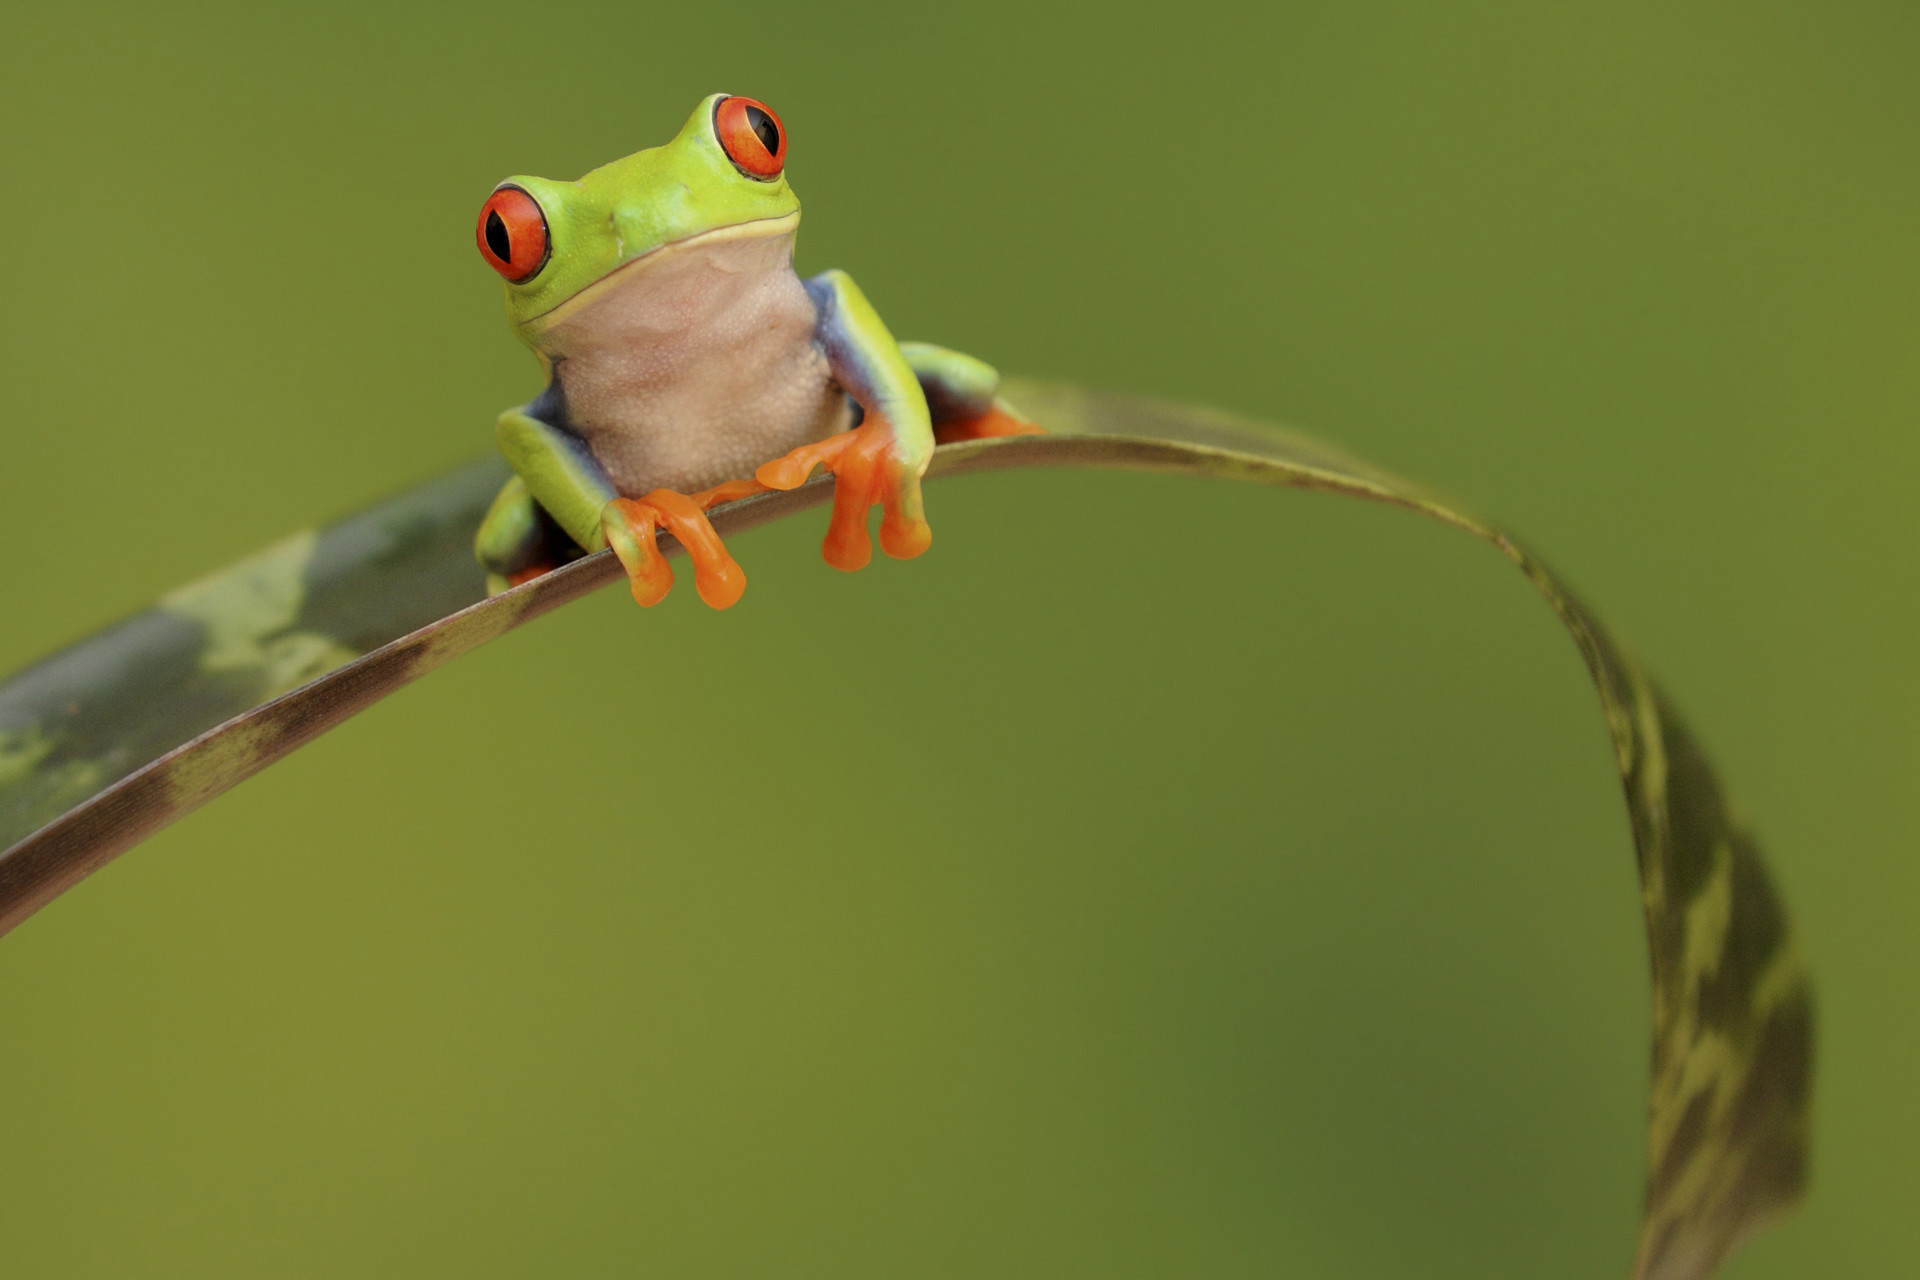 Res: 1920x1280, Frog Image